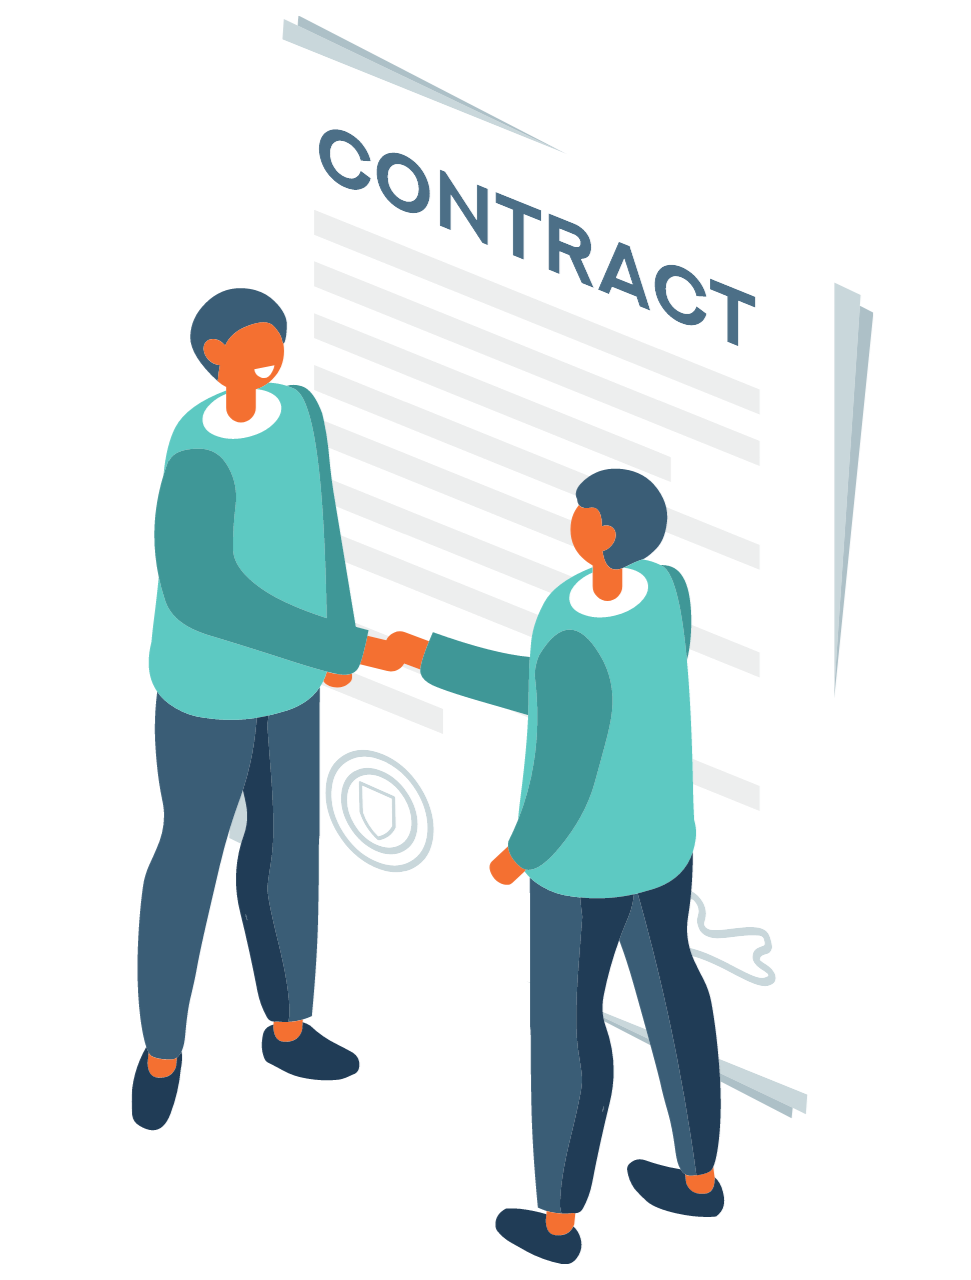 two person handshake, agree to contract, adults signing contract, rental agreement, room to rent in kuala lumpur, kl, with contract document